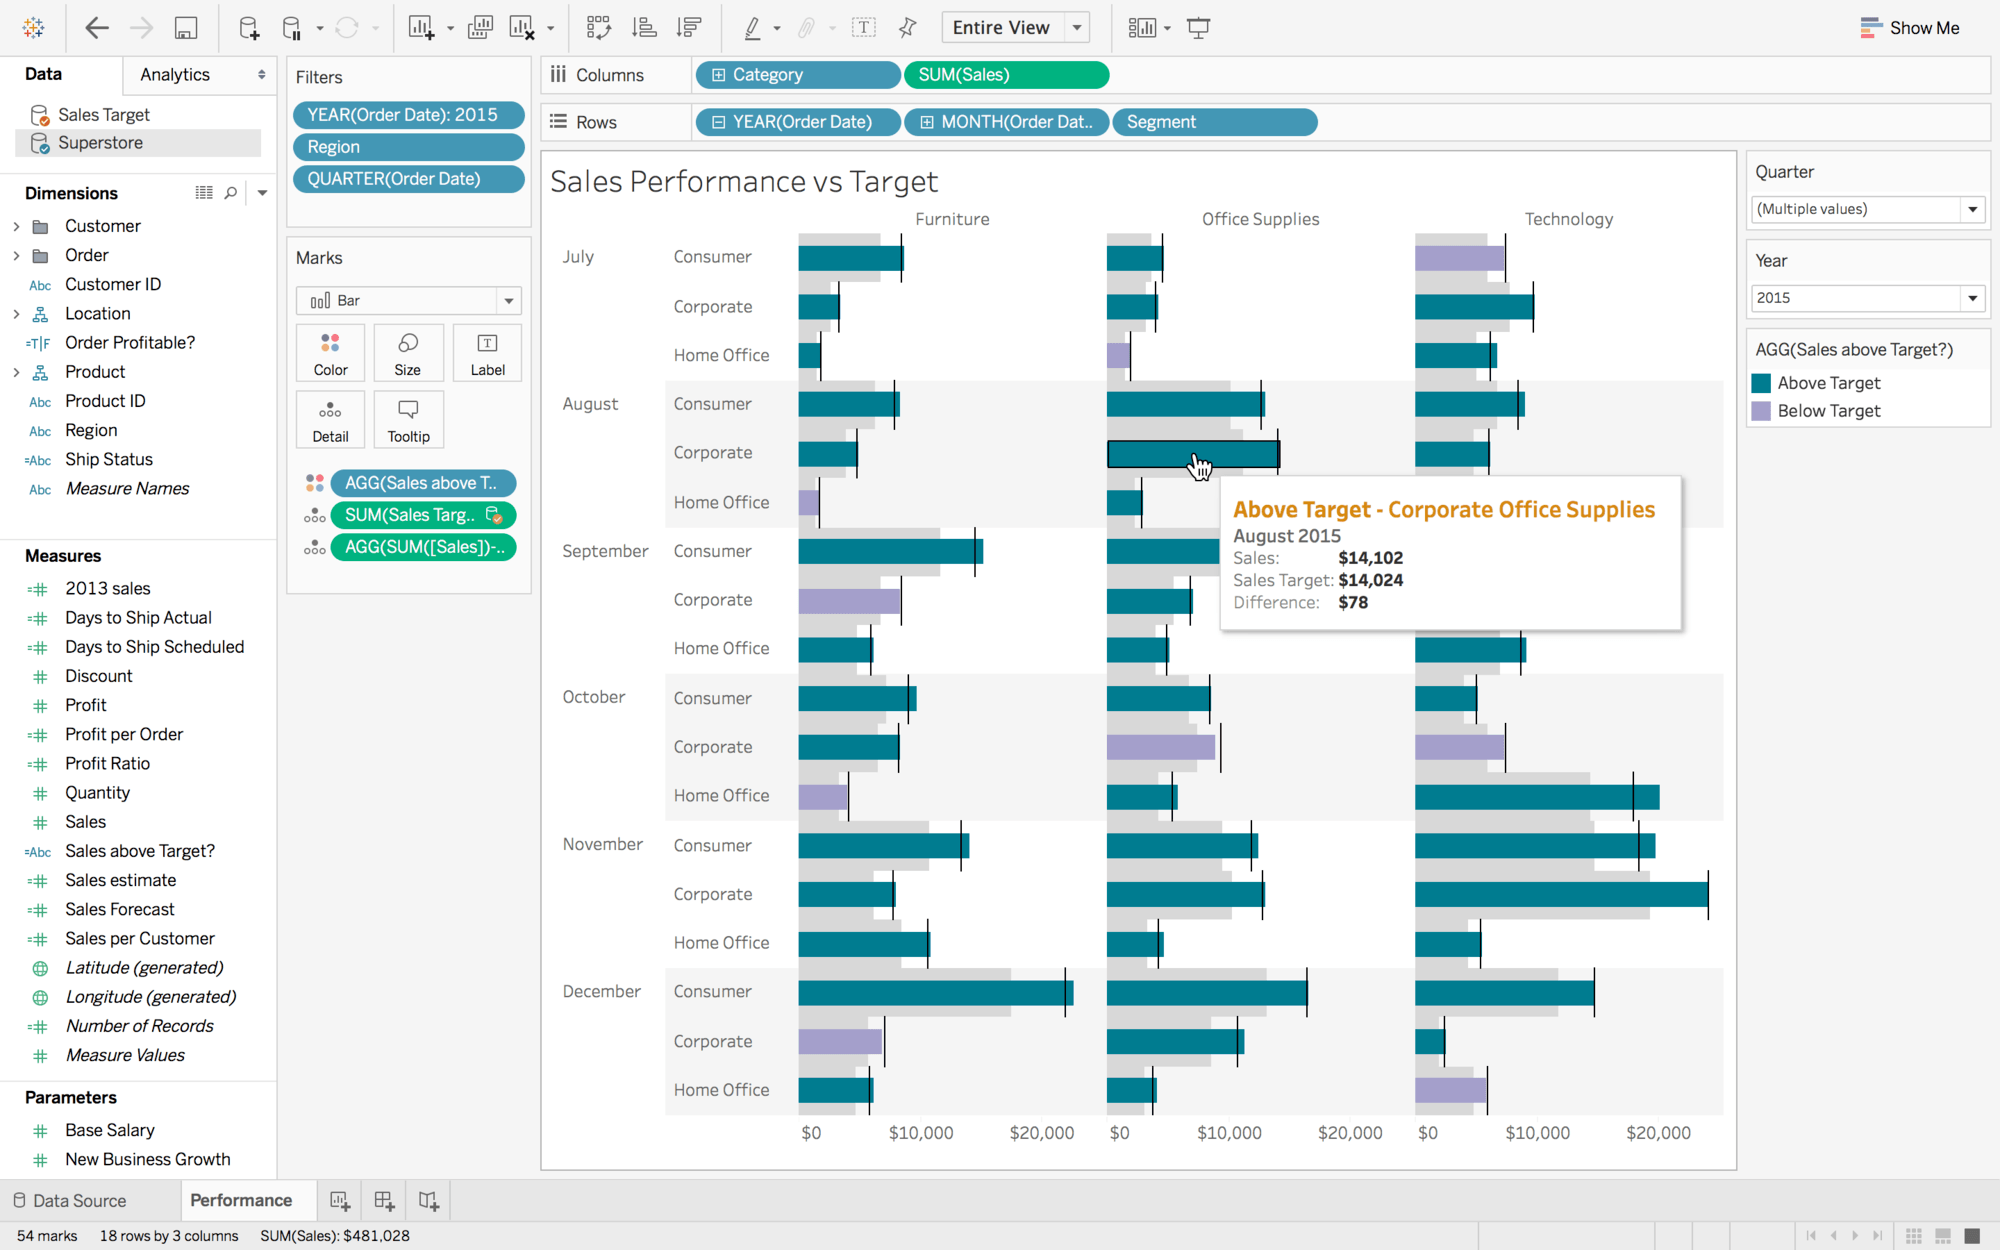 Spreadsheet analysis with Tableau for visual analytics